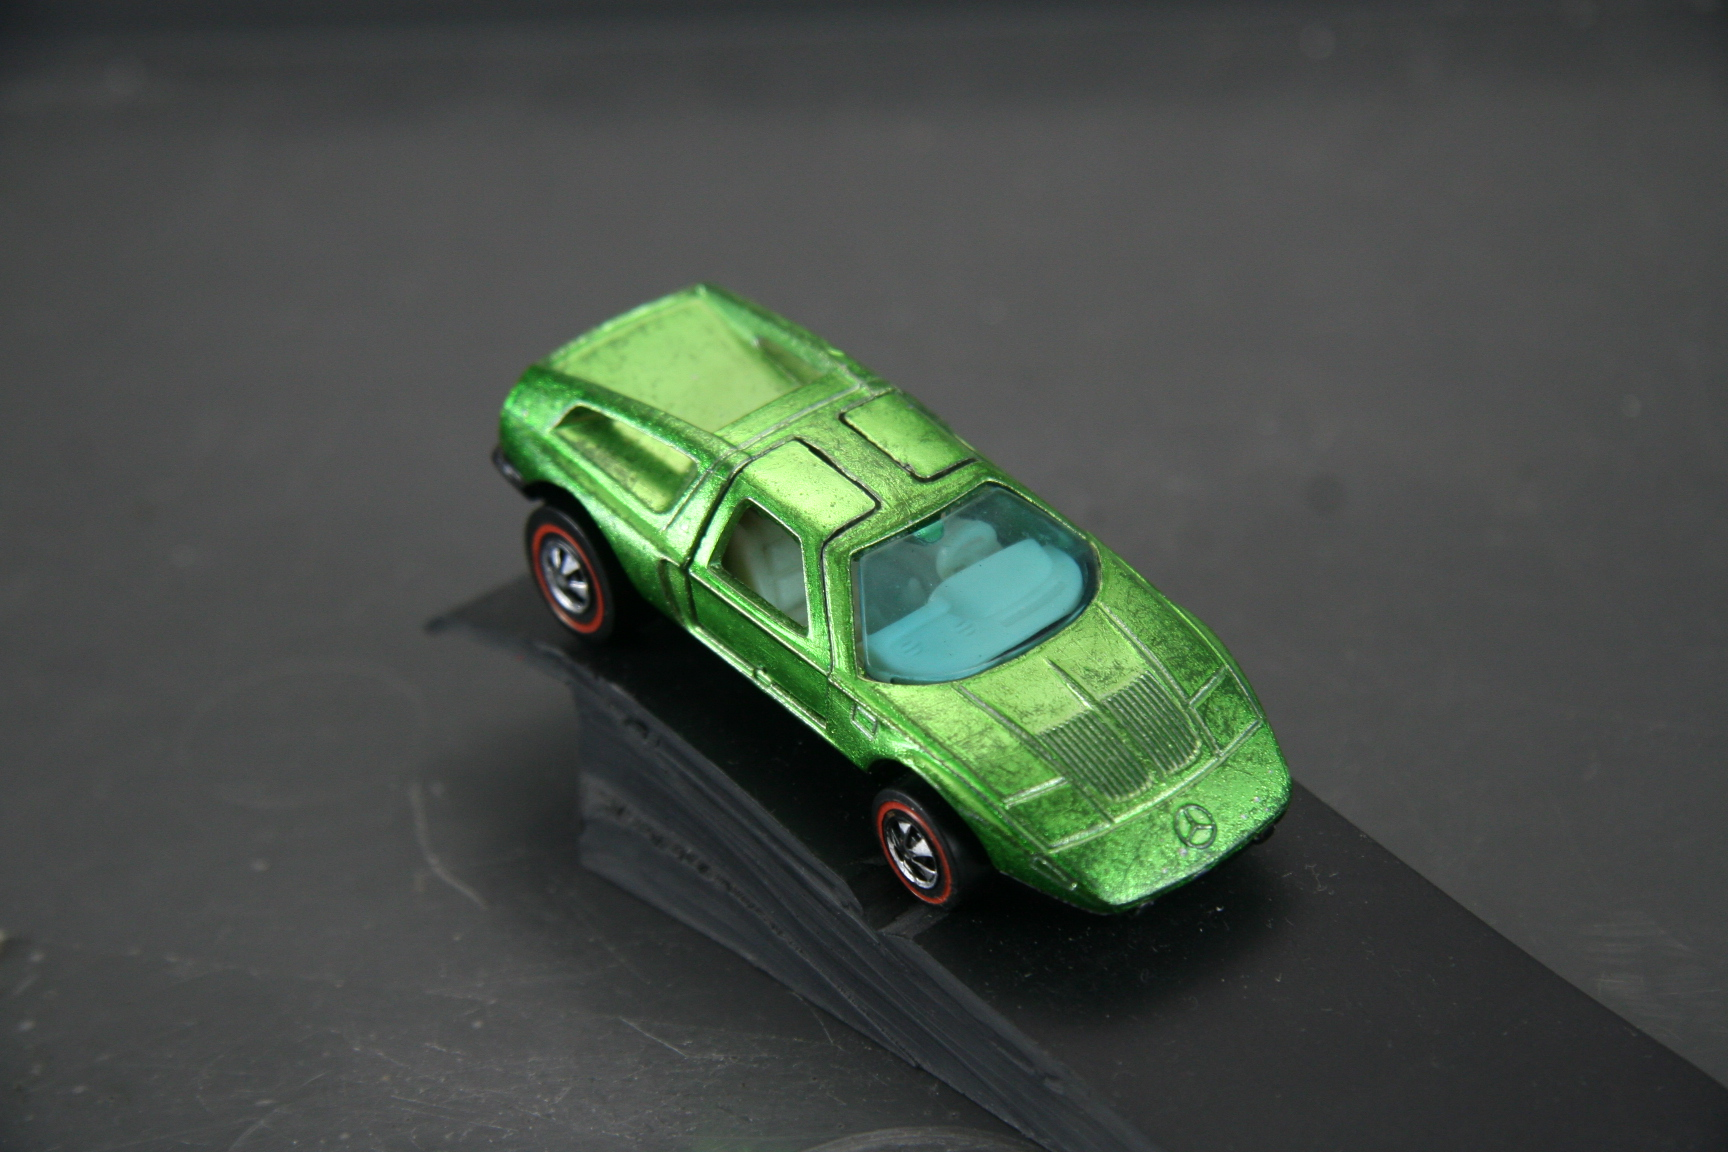 Who Buys old Hot Wheels